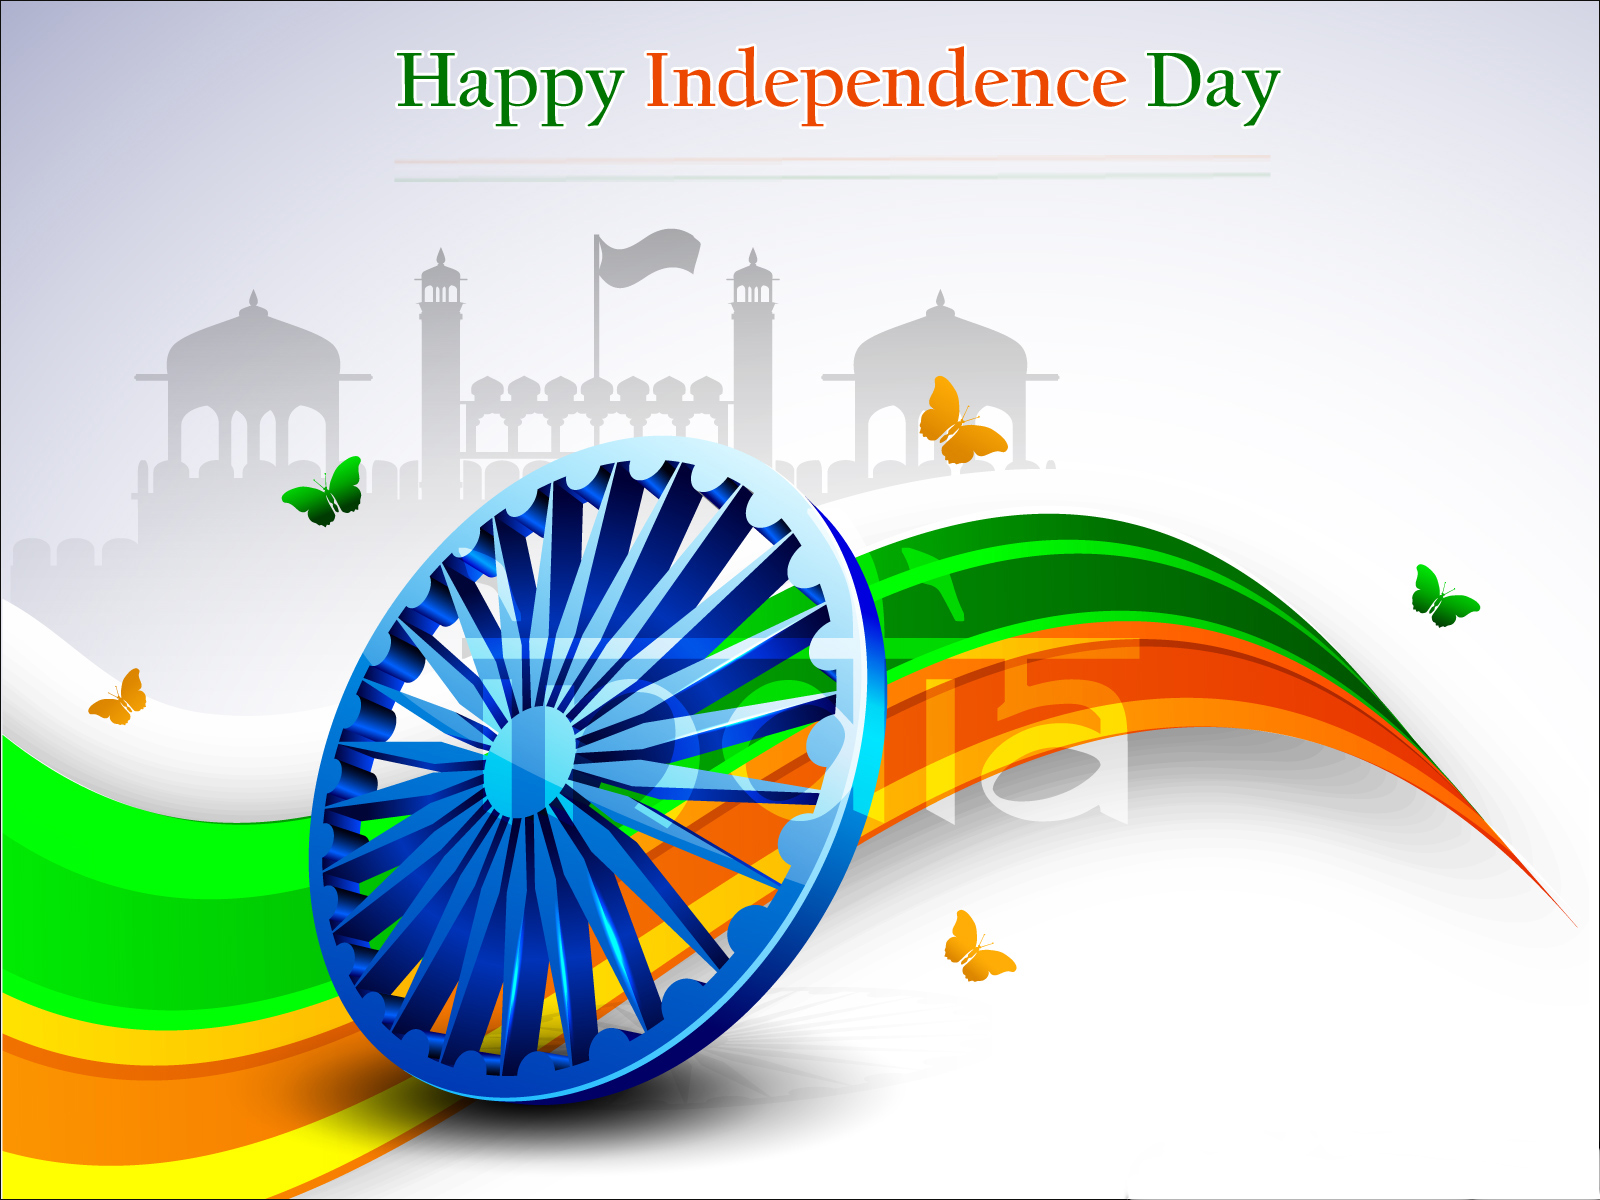 Day Happy Hd Indpeneence